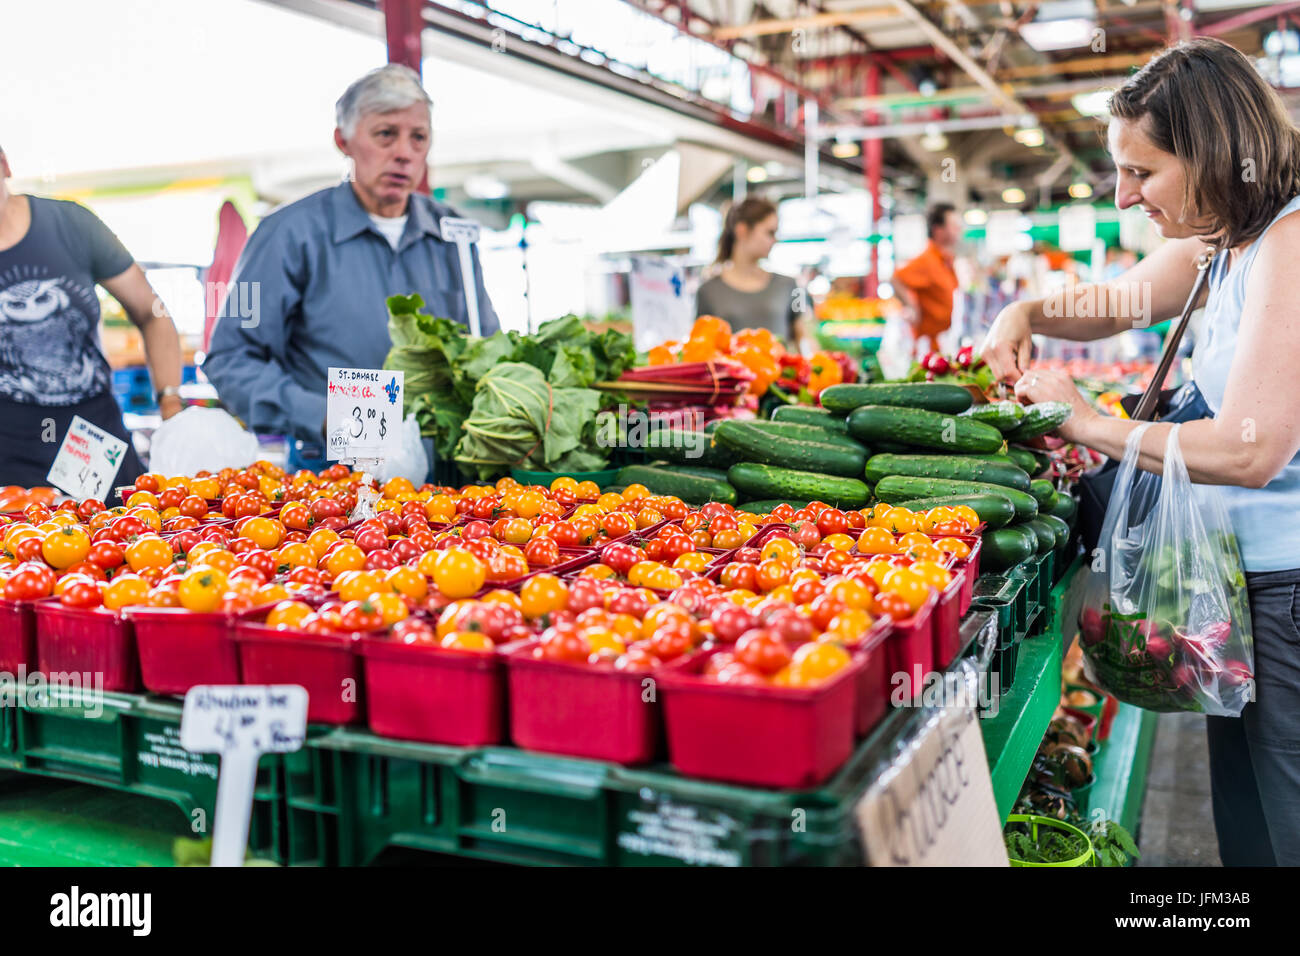 Montreal, Canada - May 28, 2017: Man selling produce by fruit stand with woman buying cucumbers at Jean-Talon farmers - Stock Image